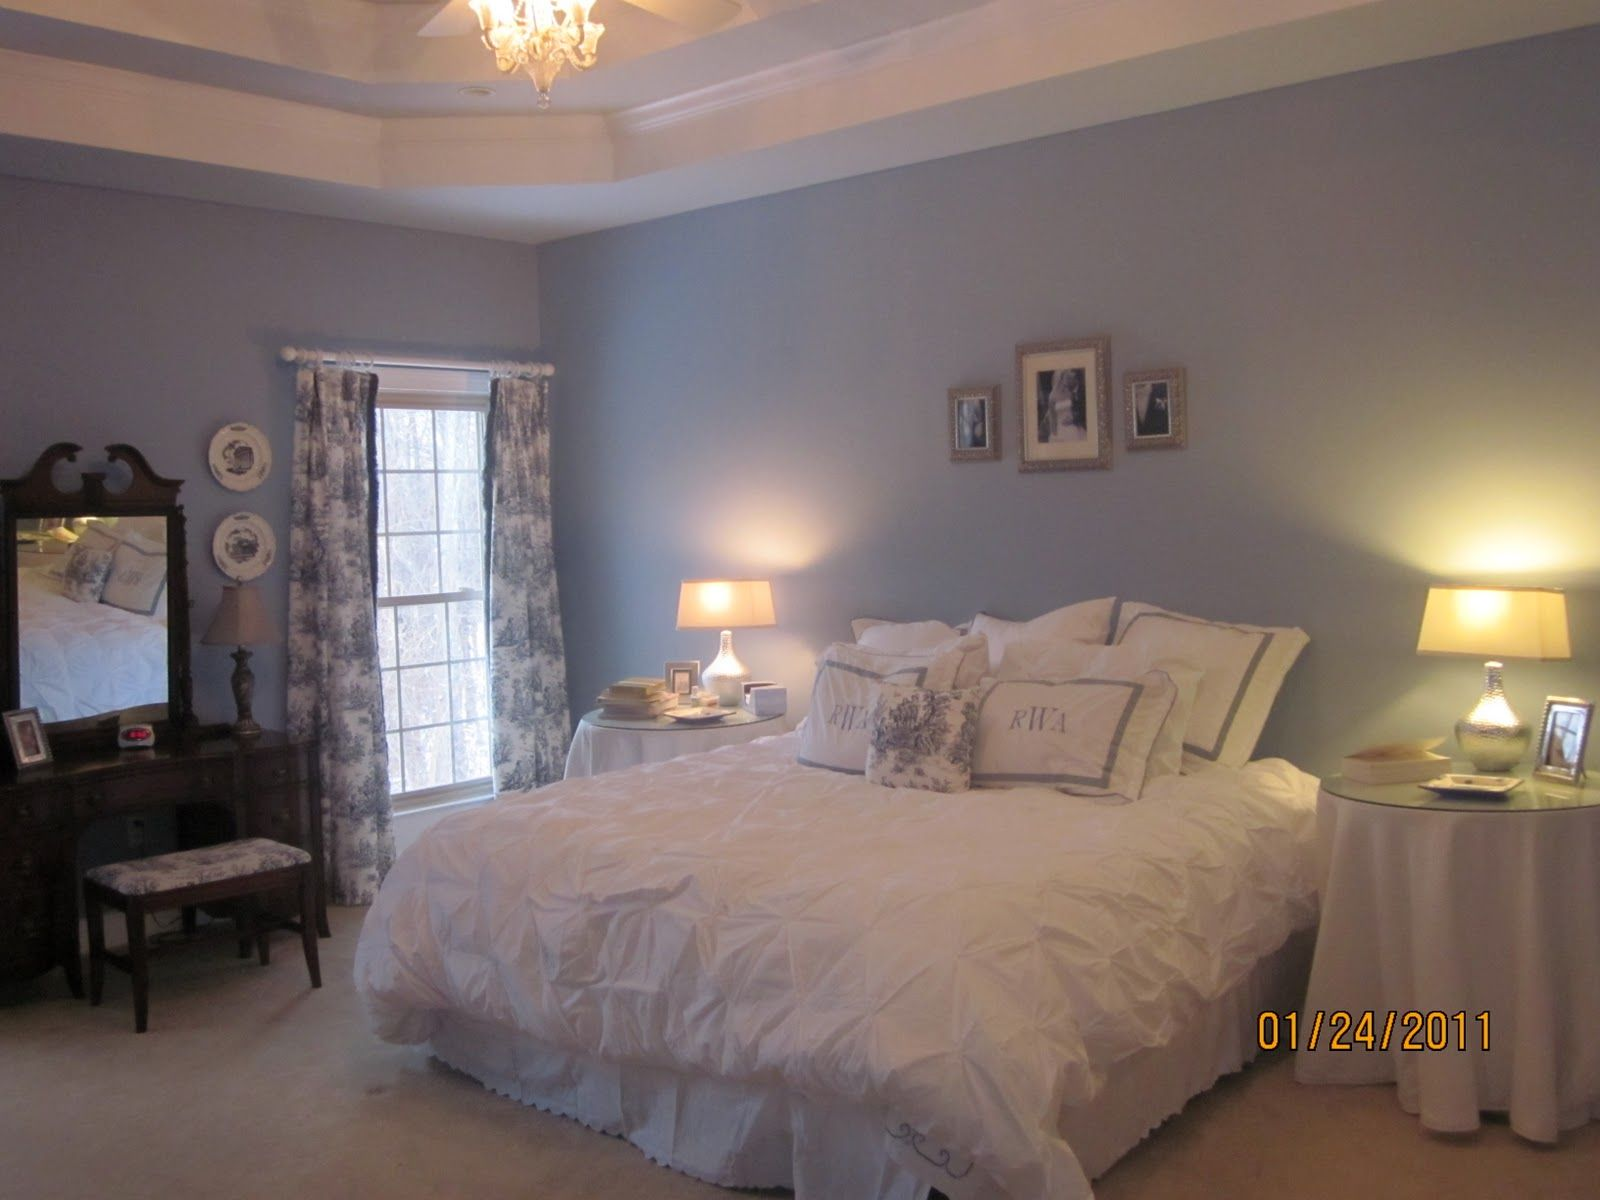 Finest Bed Without Headboard Decorating Ideas Hd Design